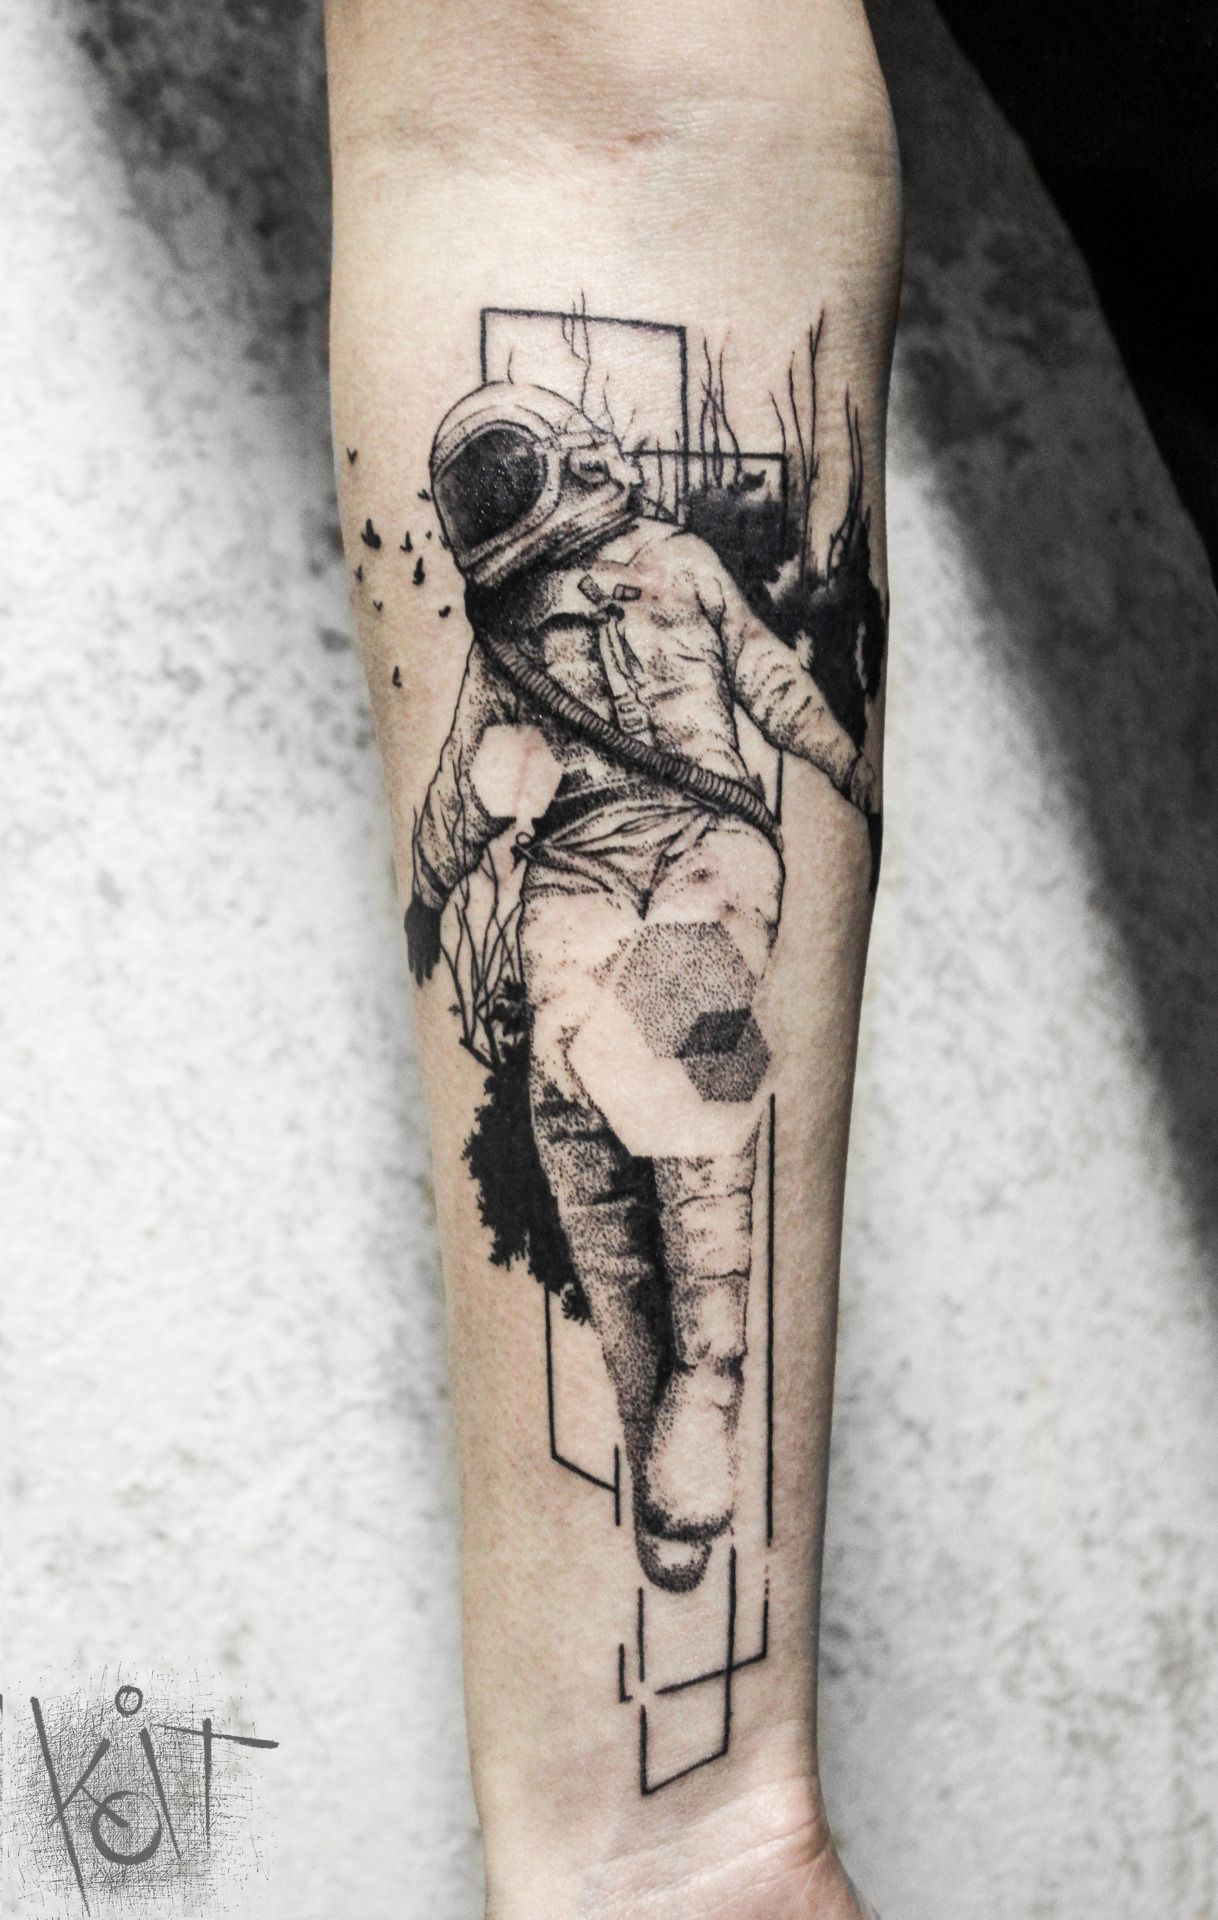 koit tattoo berlin germany black graphic style astronaut tattoo design on forearm inked. Black Bedroom Furniture Sets. Home Design Ideas